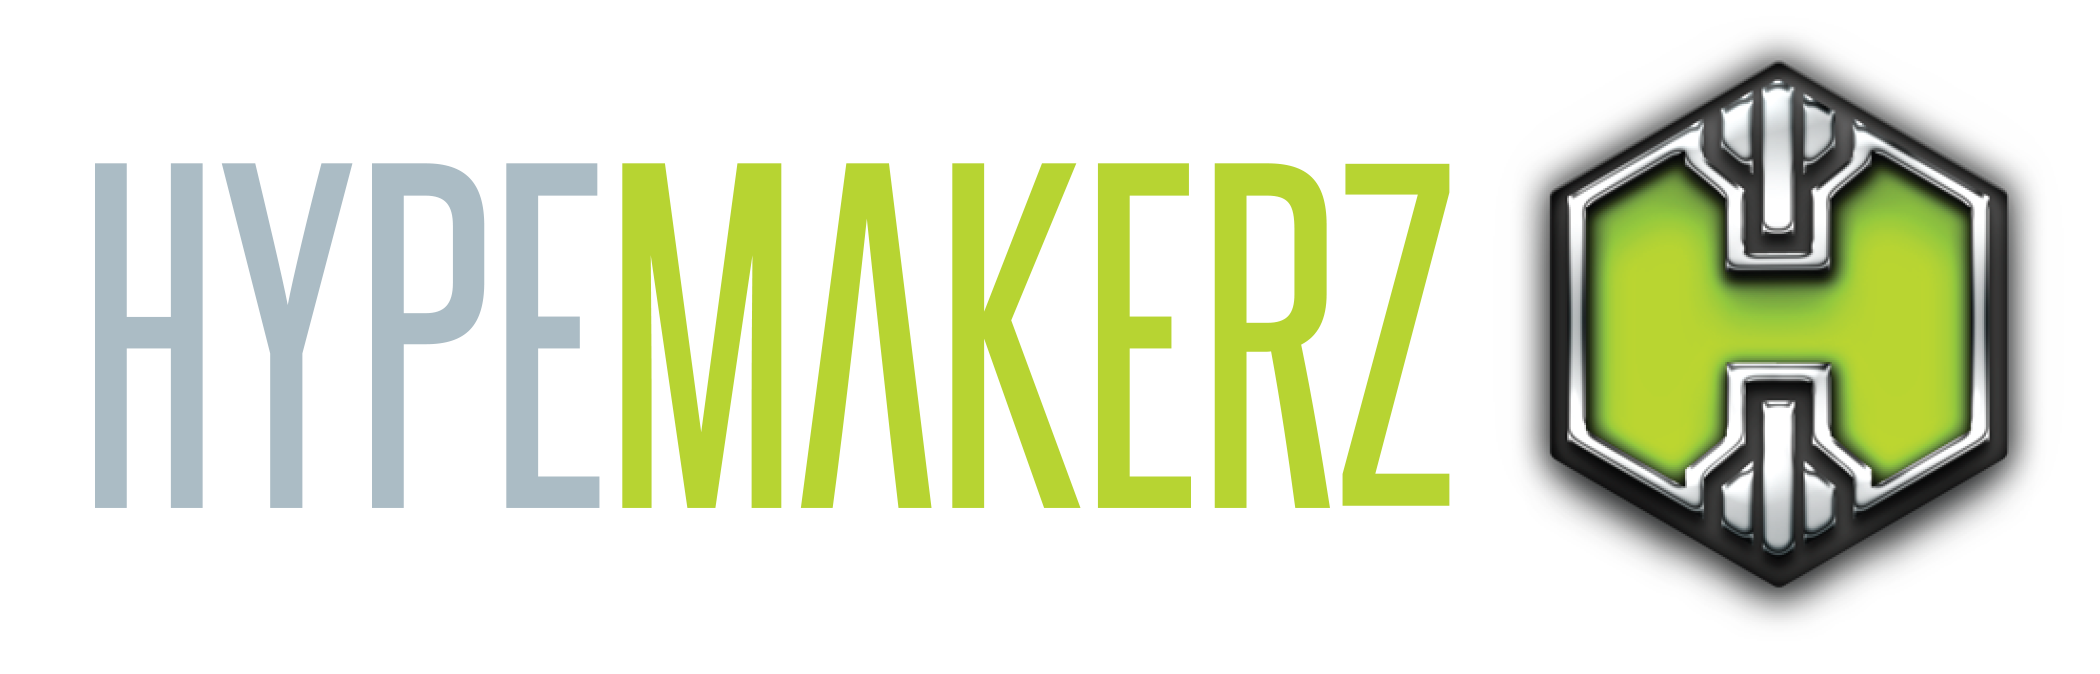 hypemakerz-full-logo-highh-res.png